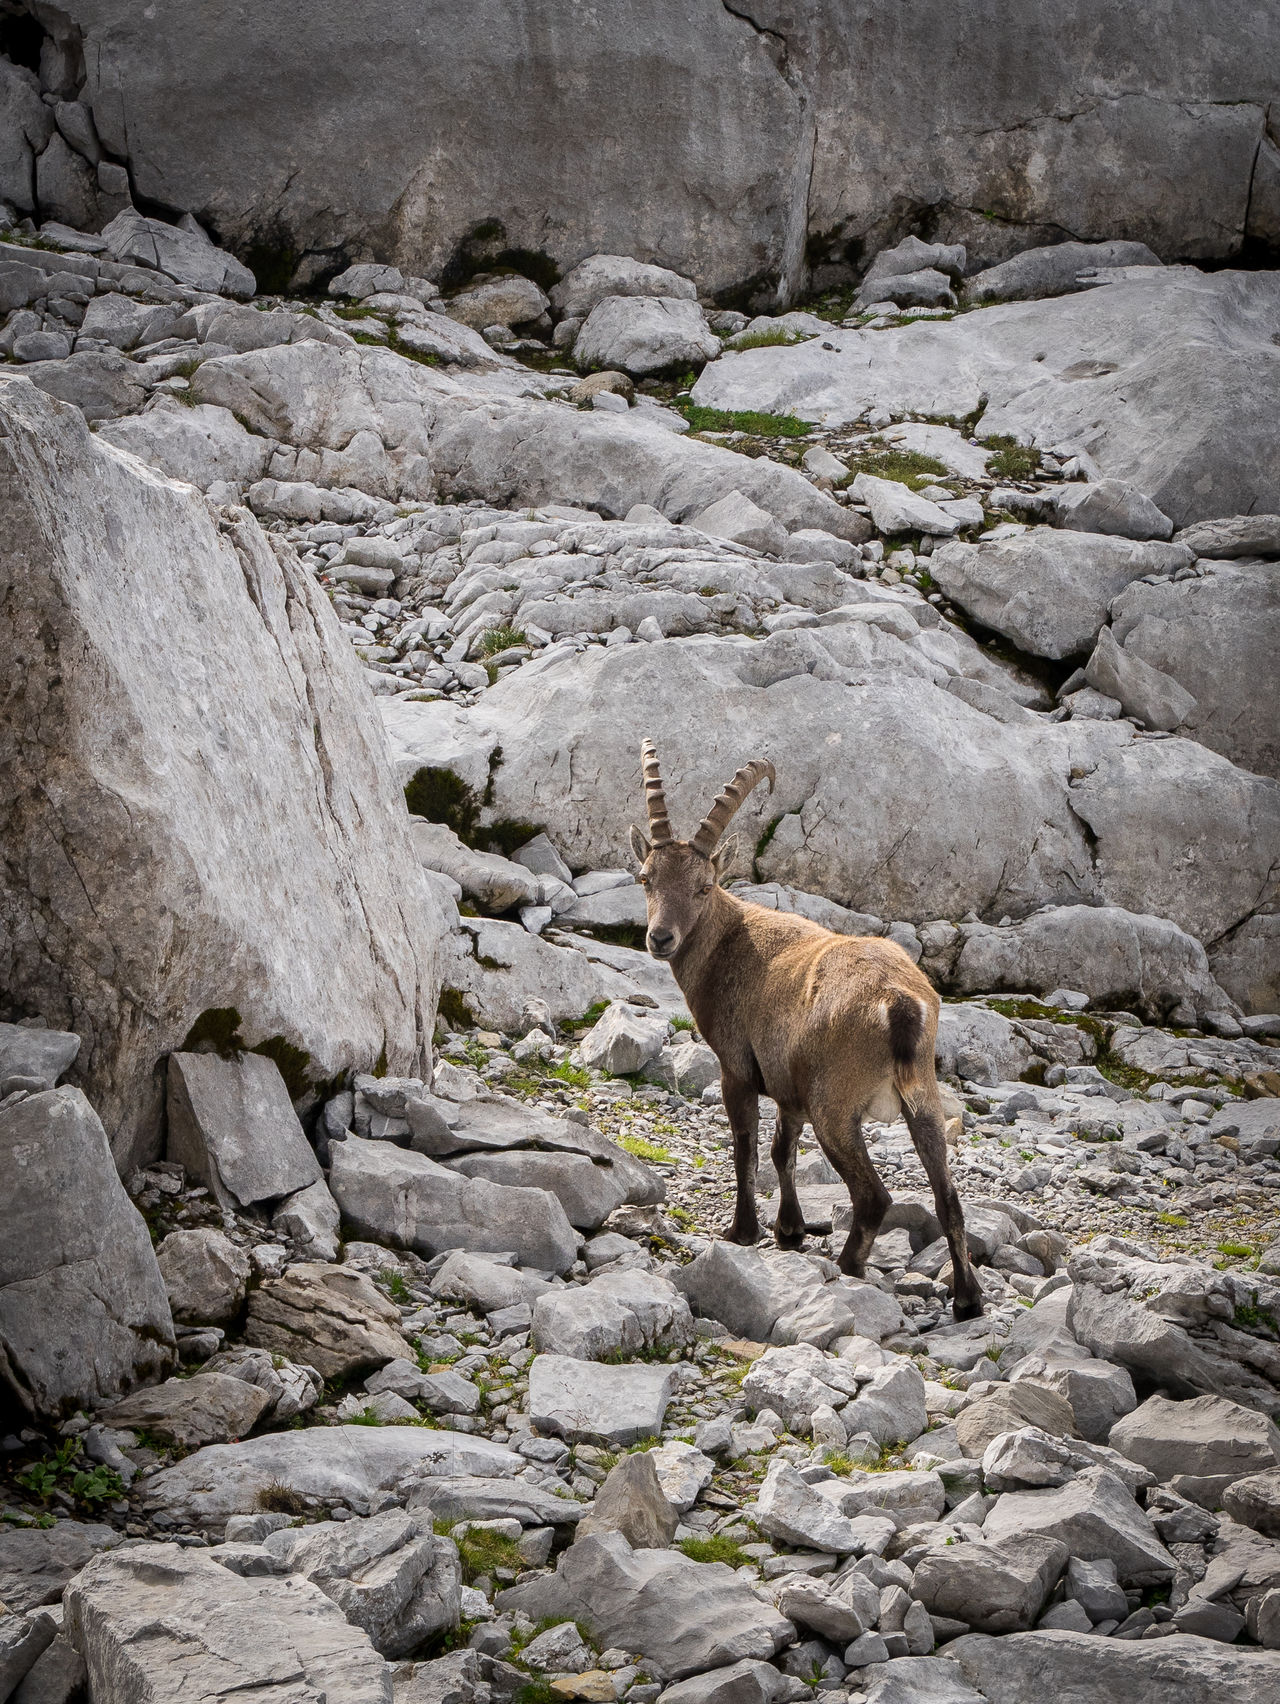 Animal Animal Themes Beauty In Nature Bouquetin Goat Moutain Ibex Goat Ibex On A Rock Rock - Object Rock Formation Stone Wild Goats